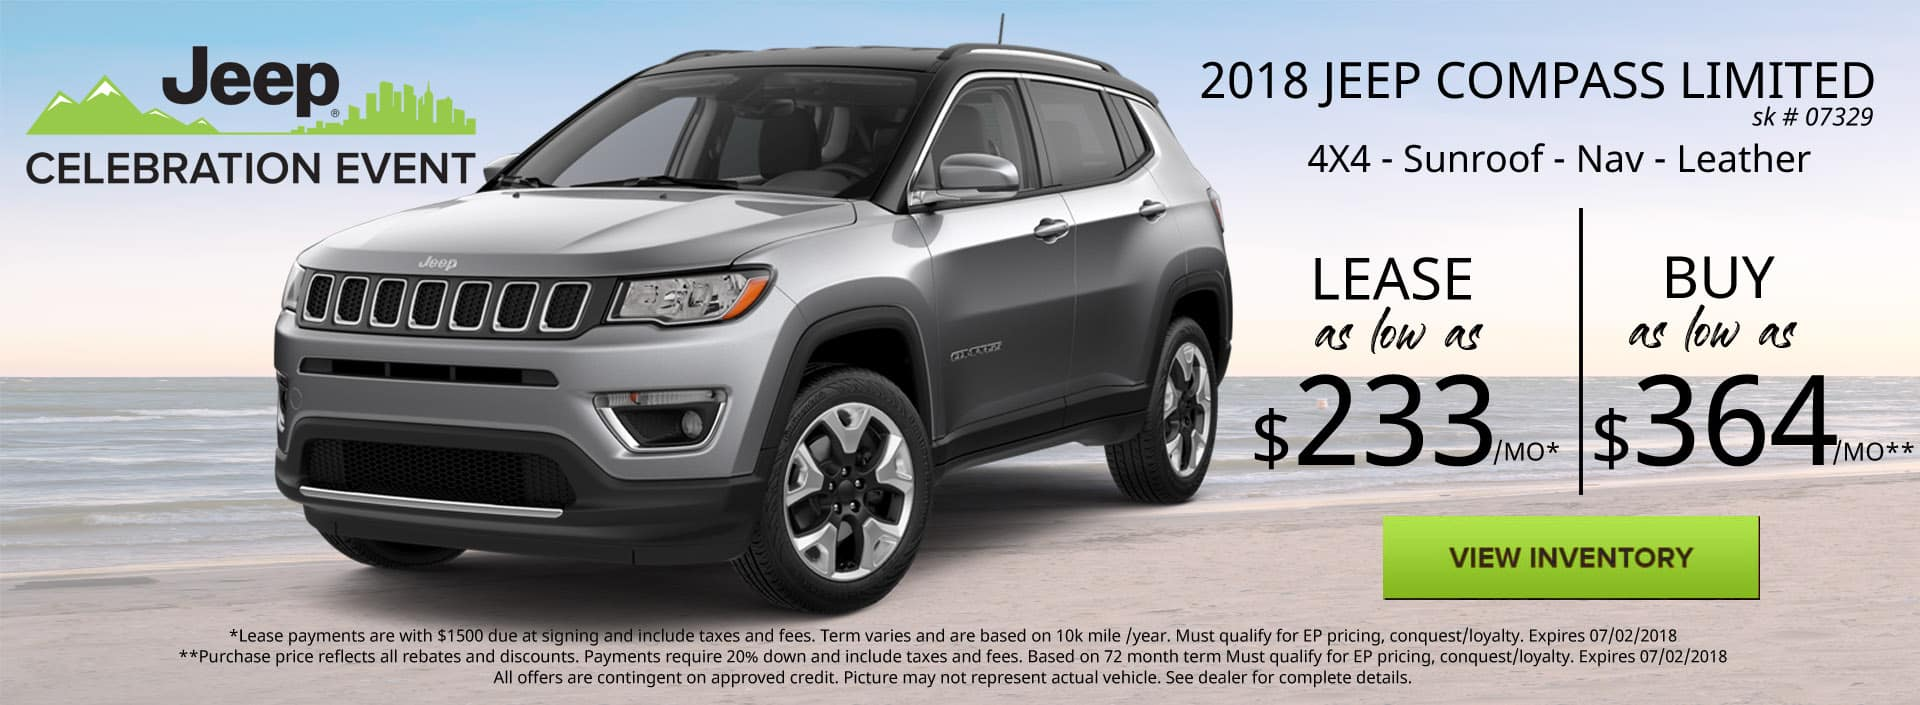 June 2018 Jeep Compass Limited Special Discount